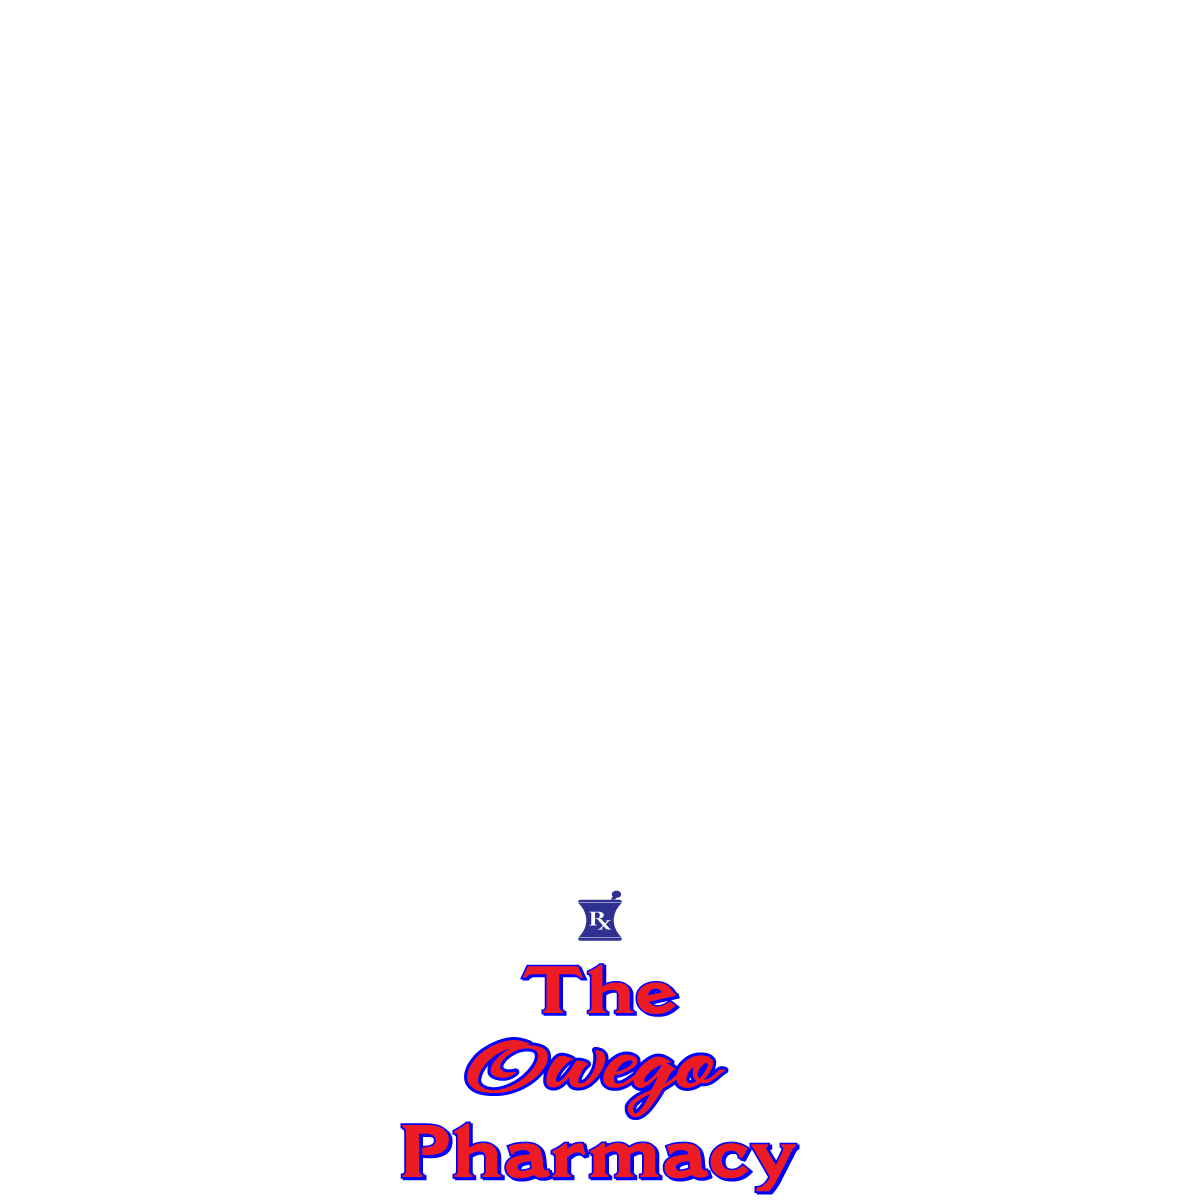 The Owego Pharmacy